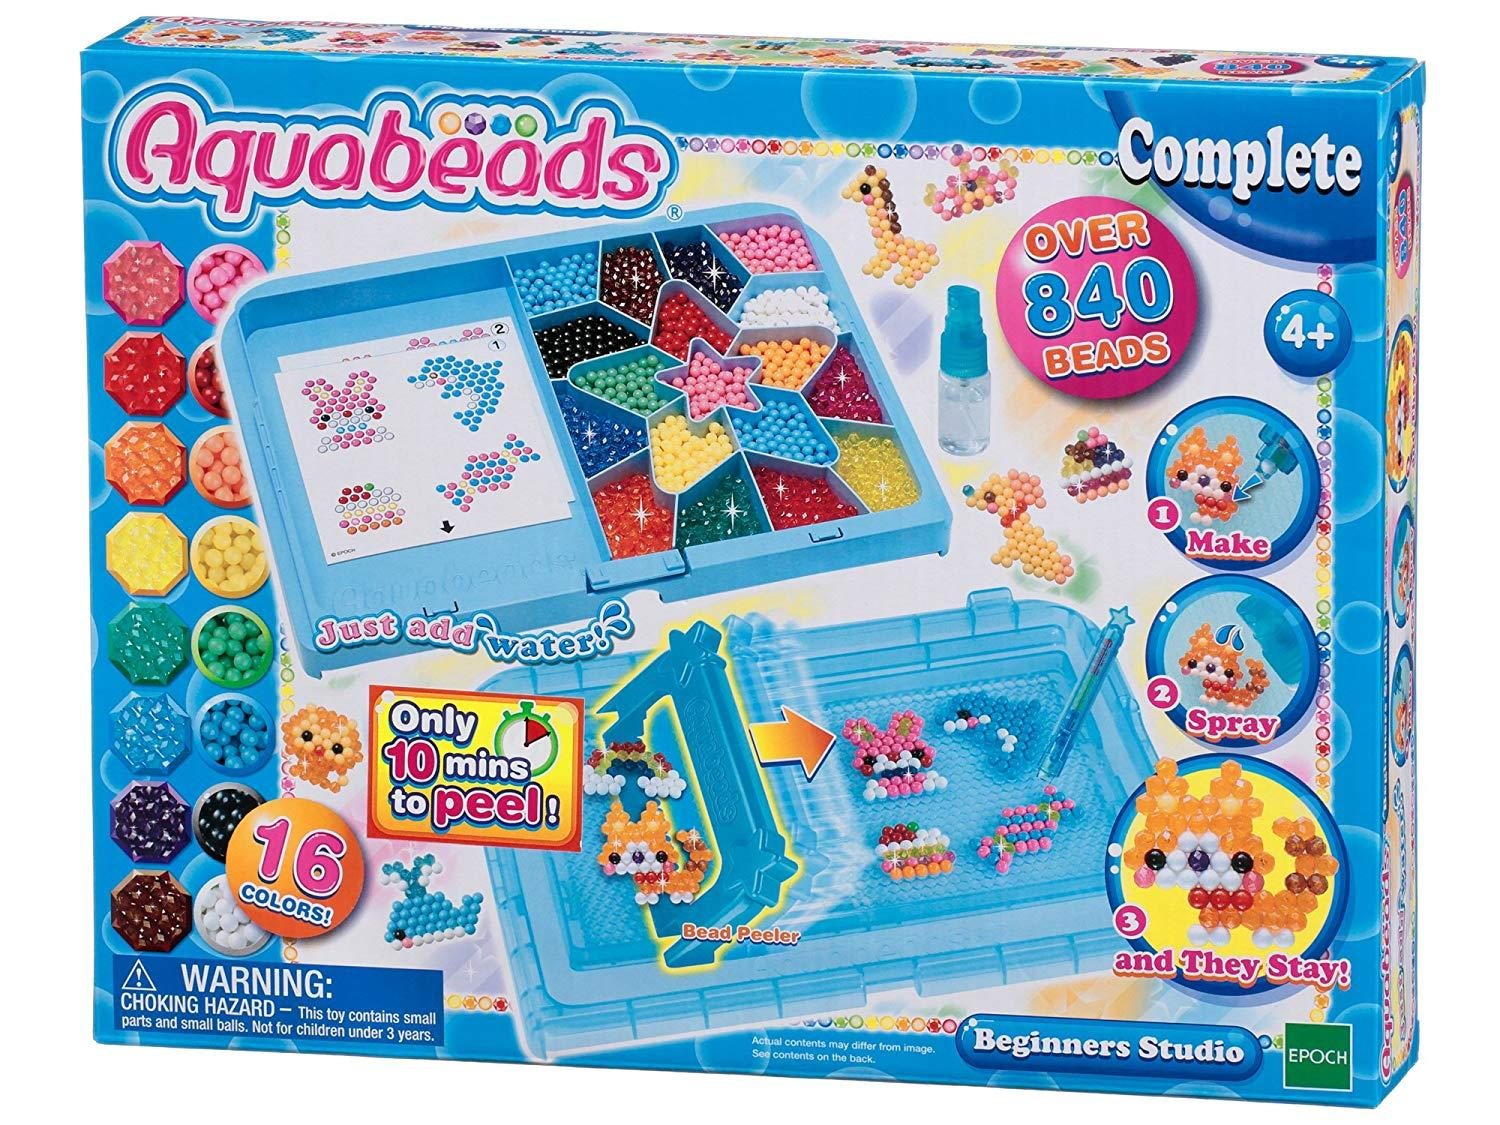 Aquabeads Beginners studio (30248)